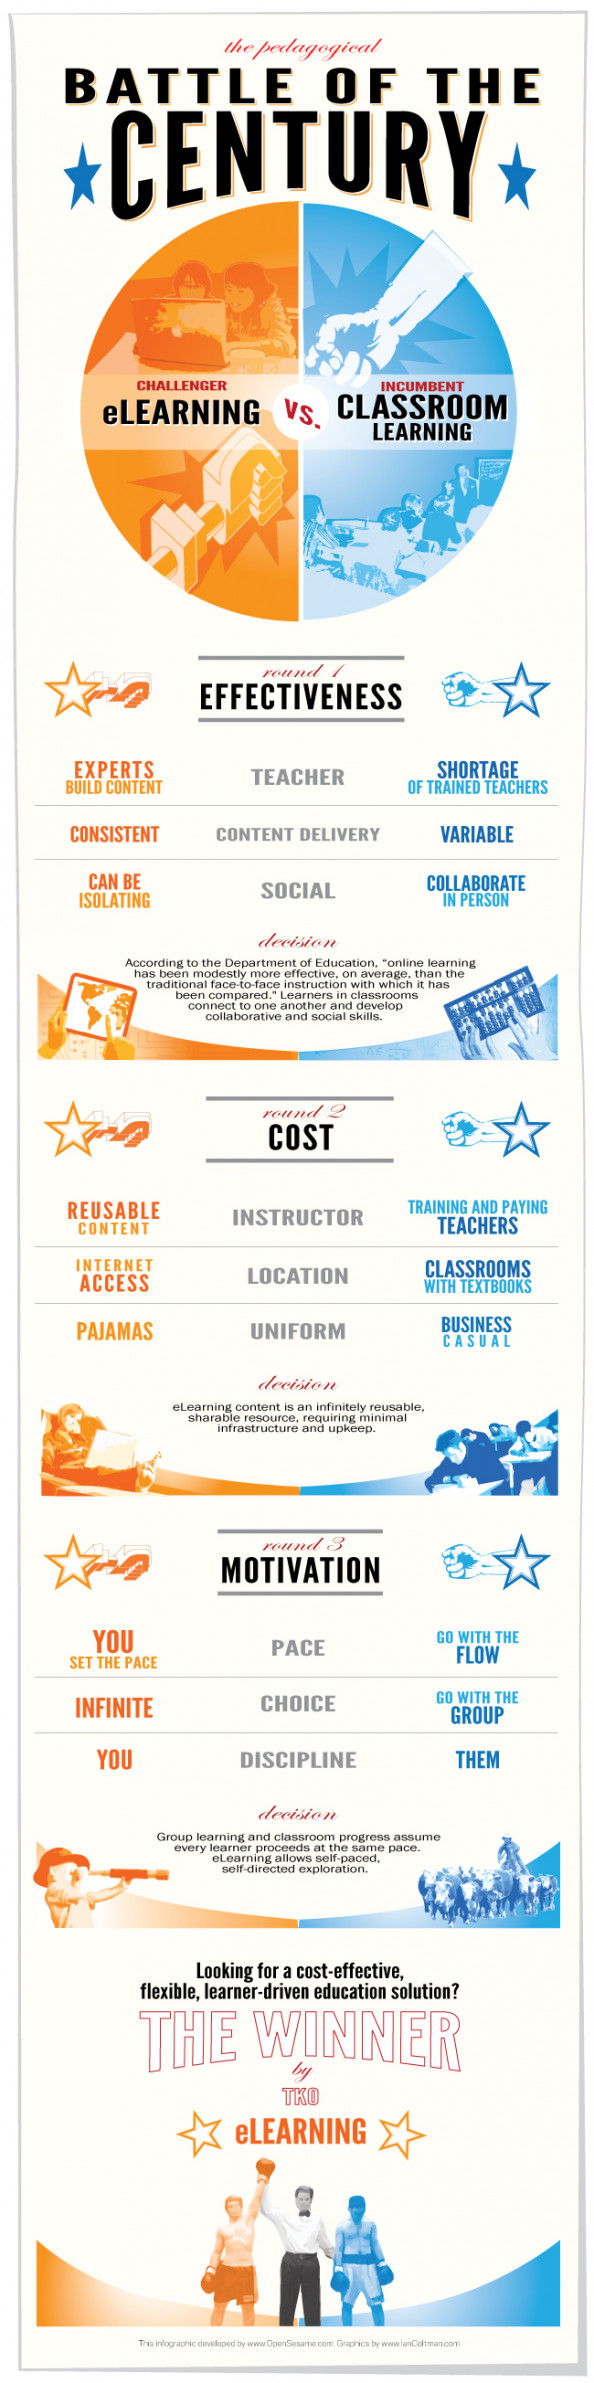 Battle of the Century: eLearning vs. Classroom Learning Infographic